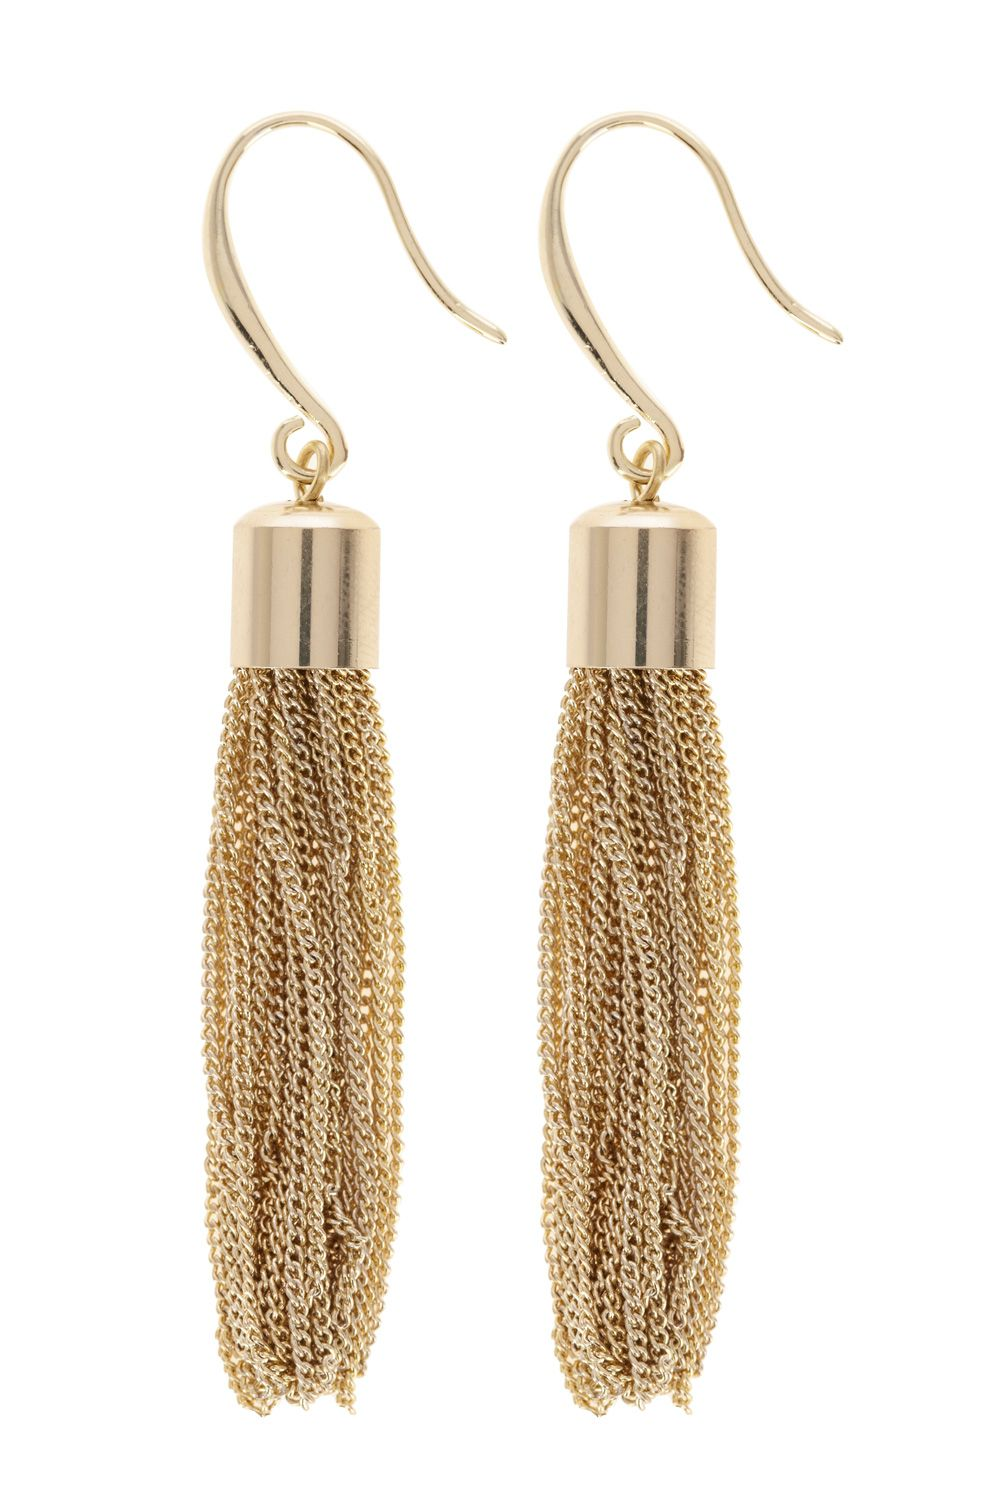 Tobi tassel earrings